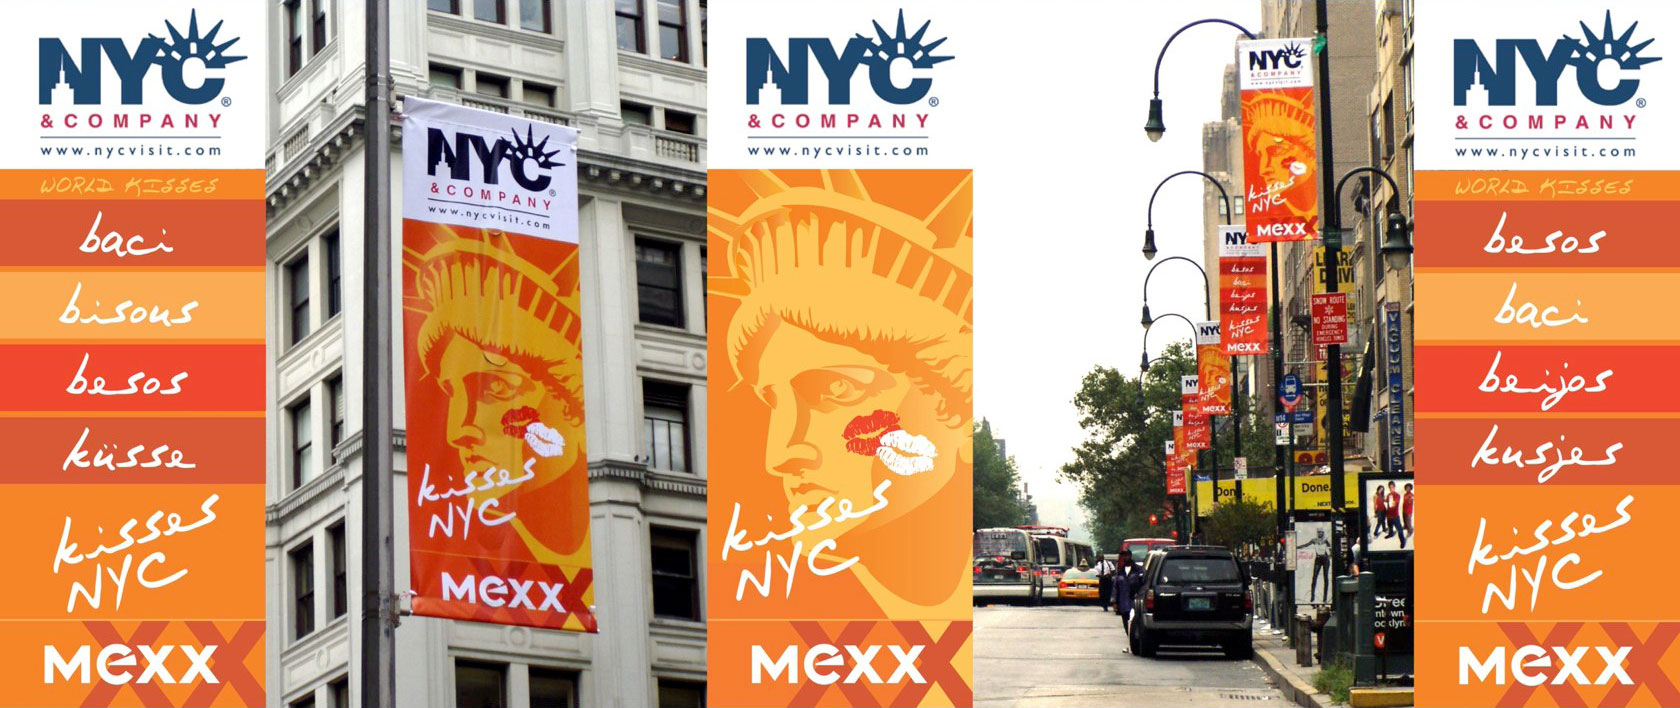 Mexx Banners